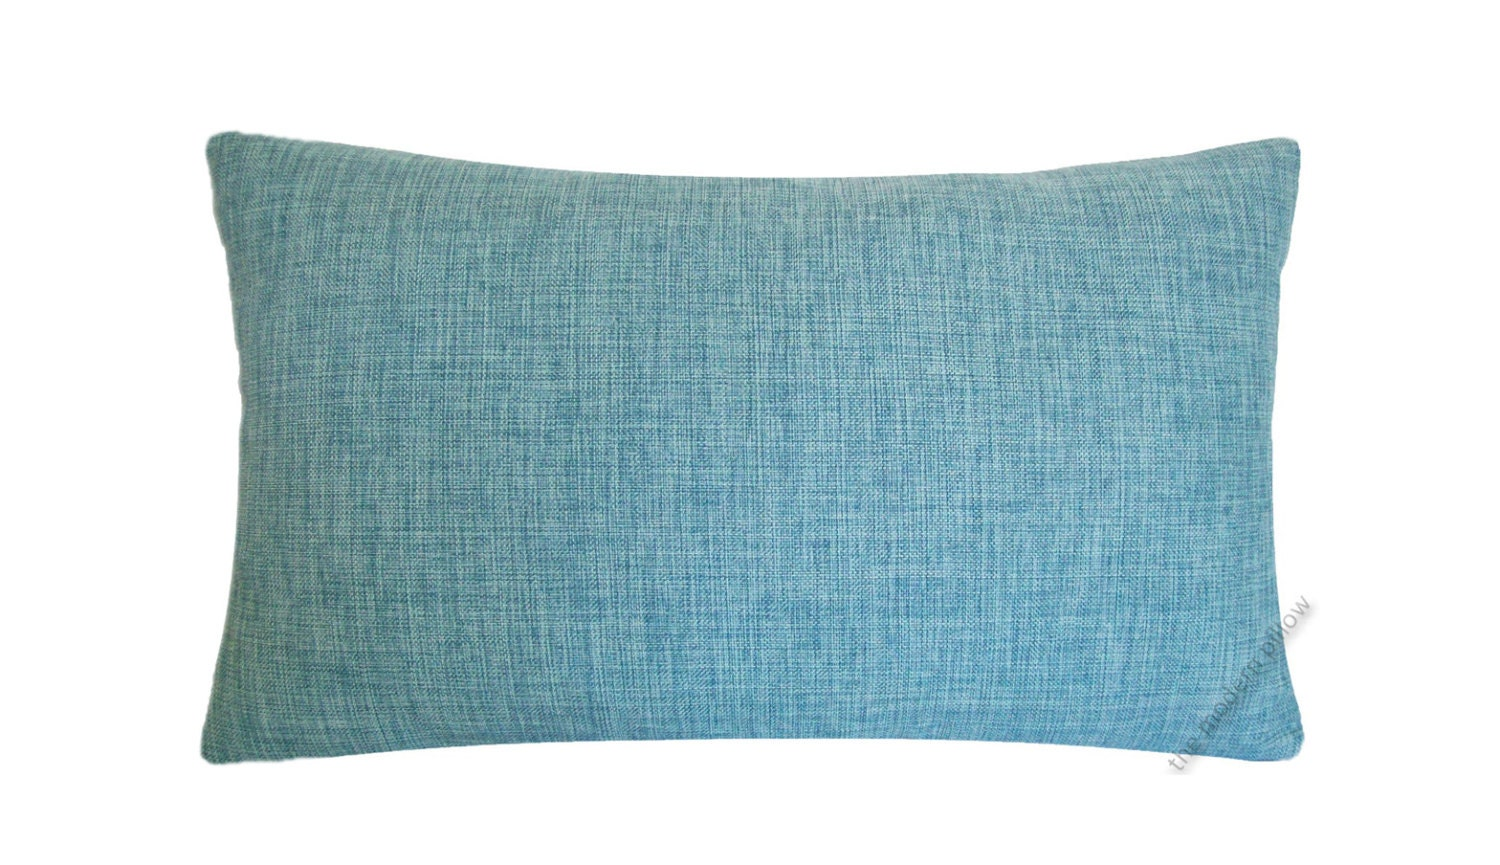 Throw Pillows Aqua Blue : Aqua Blue Cosmo Linen Decorative Throw Pillow Cover / Pillow